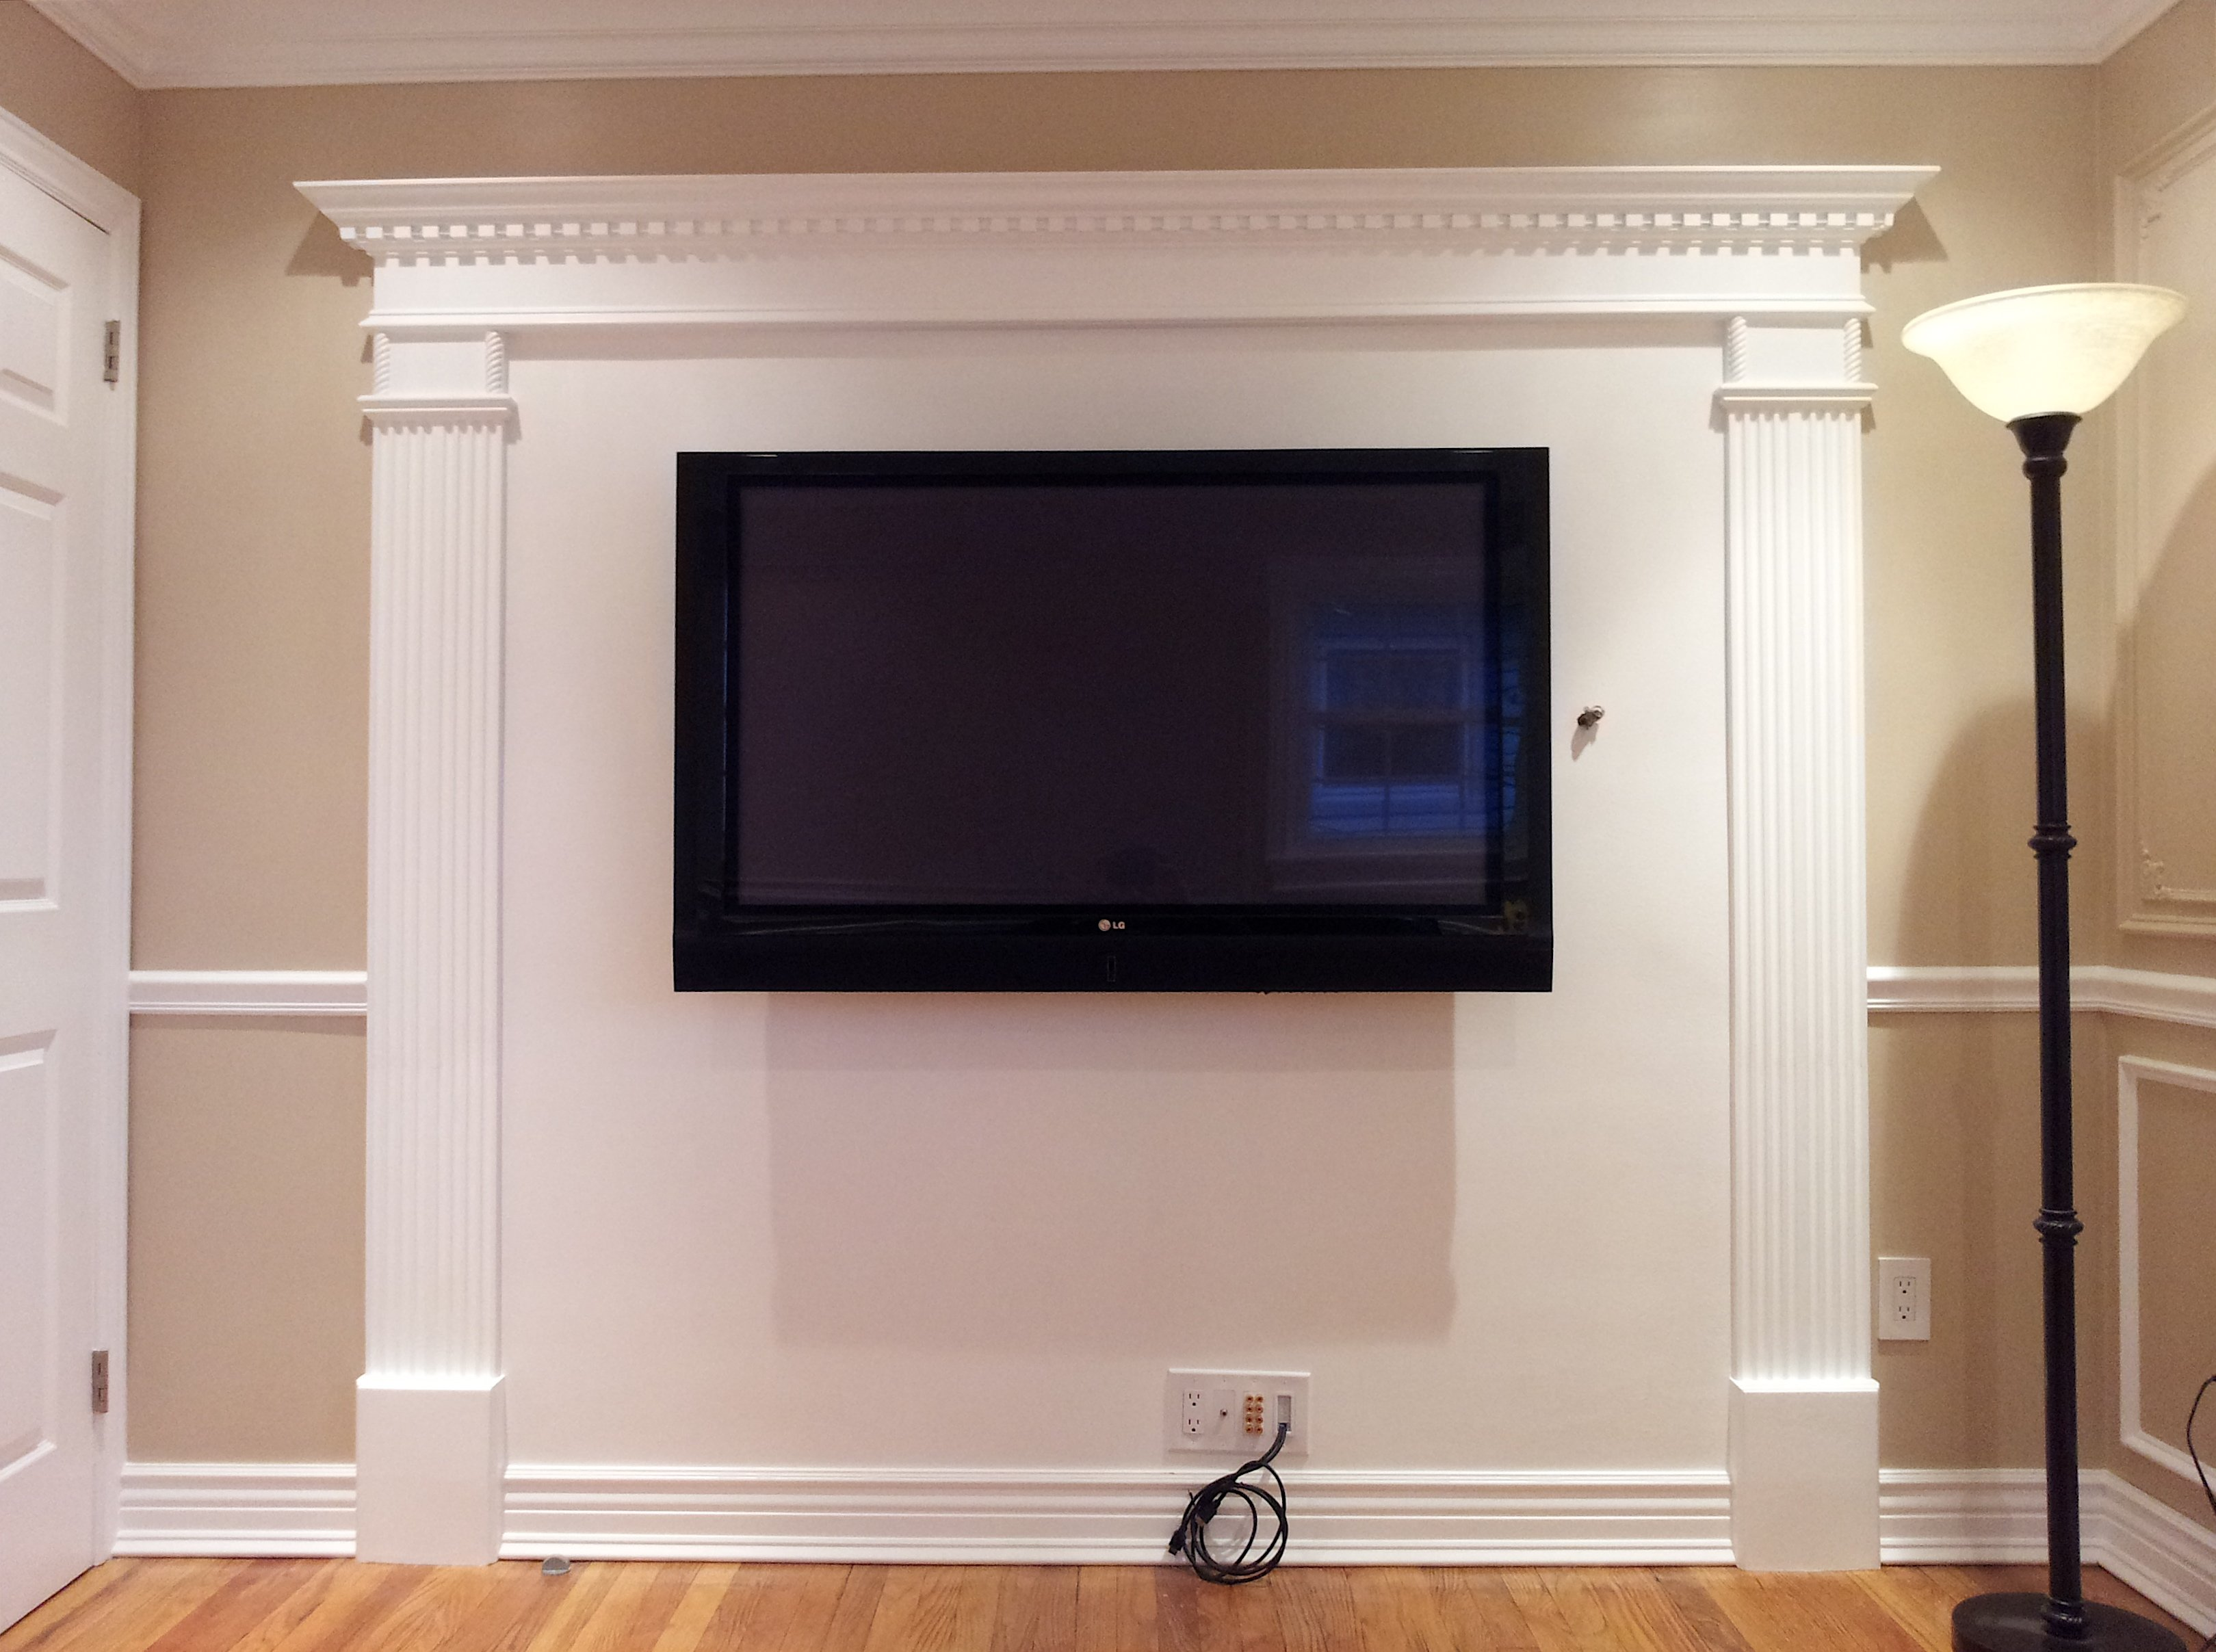 question about large screen tv in room with wainscoting - avs